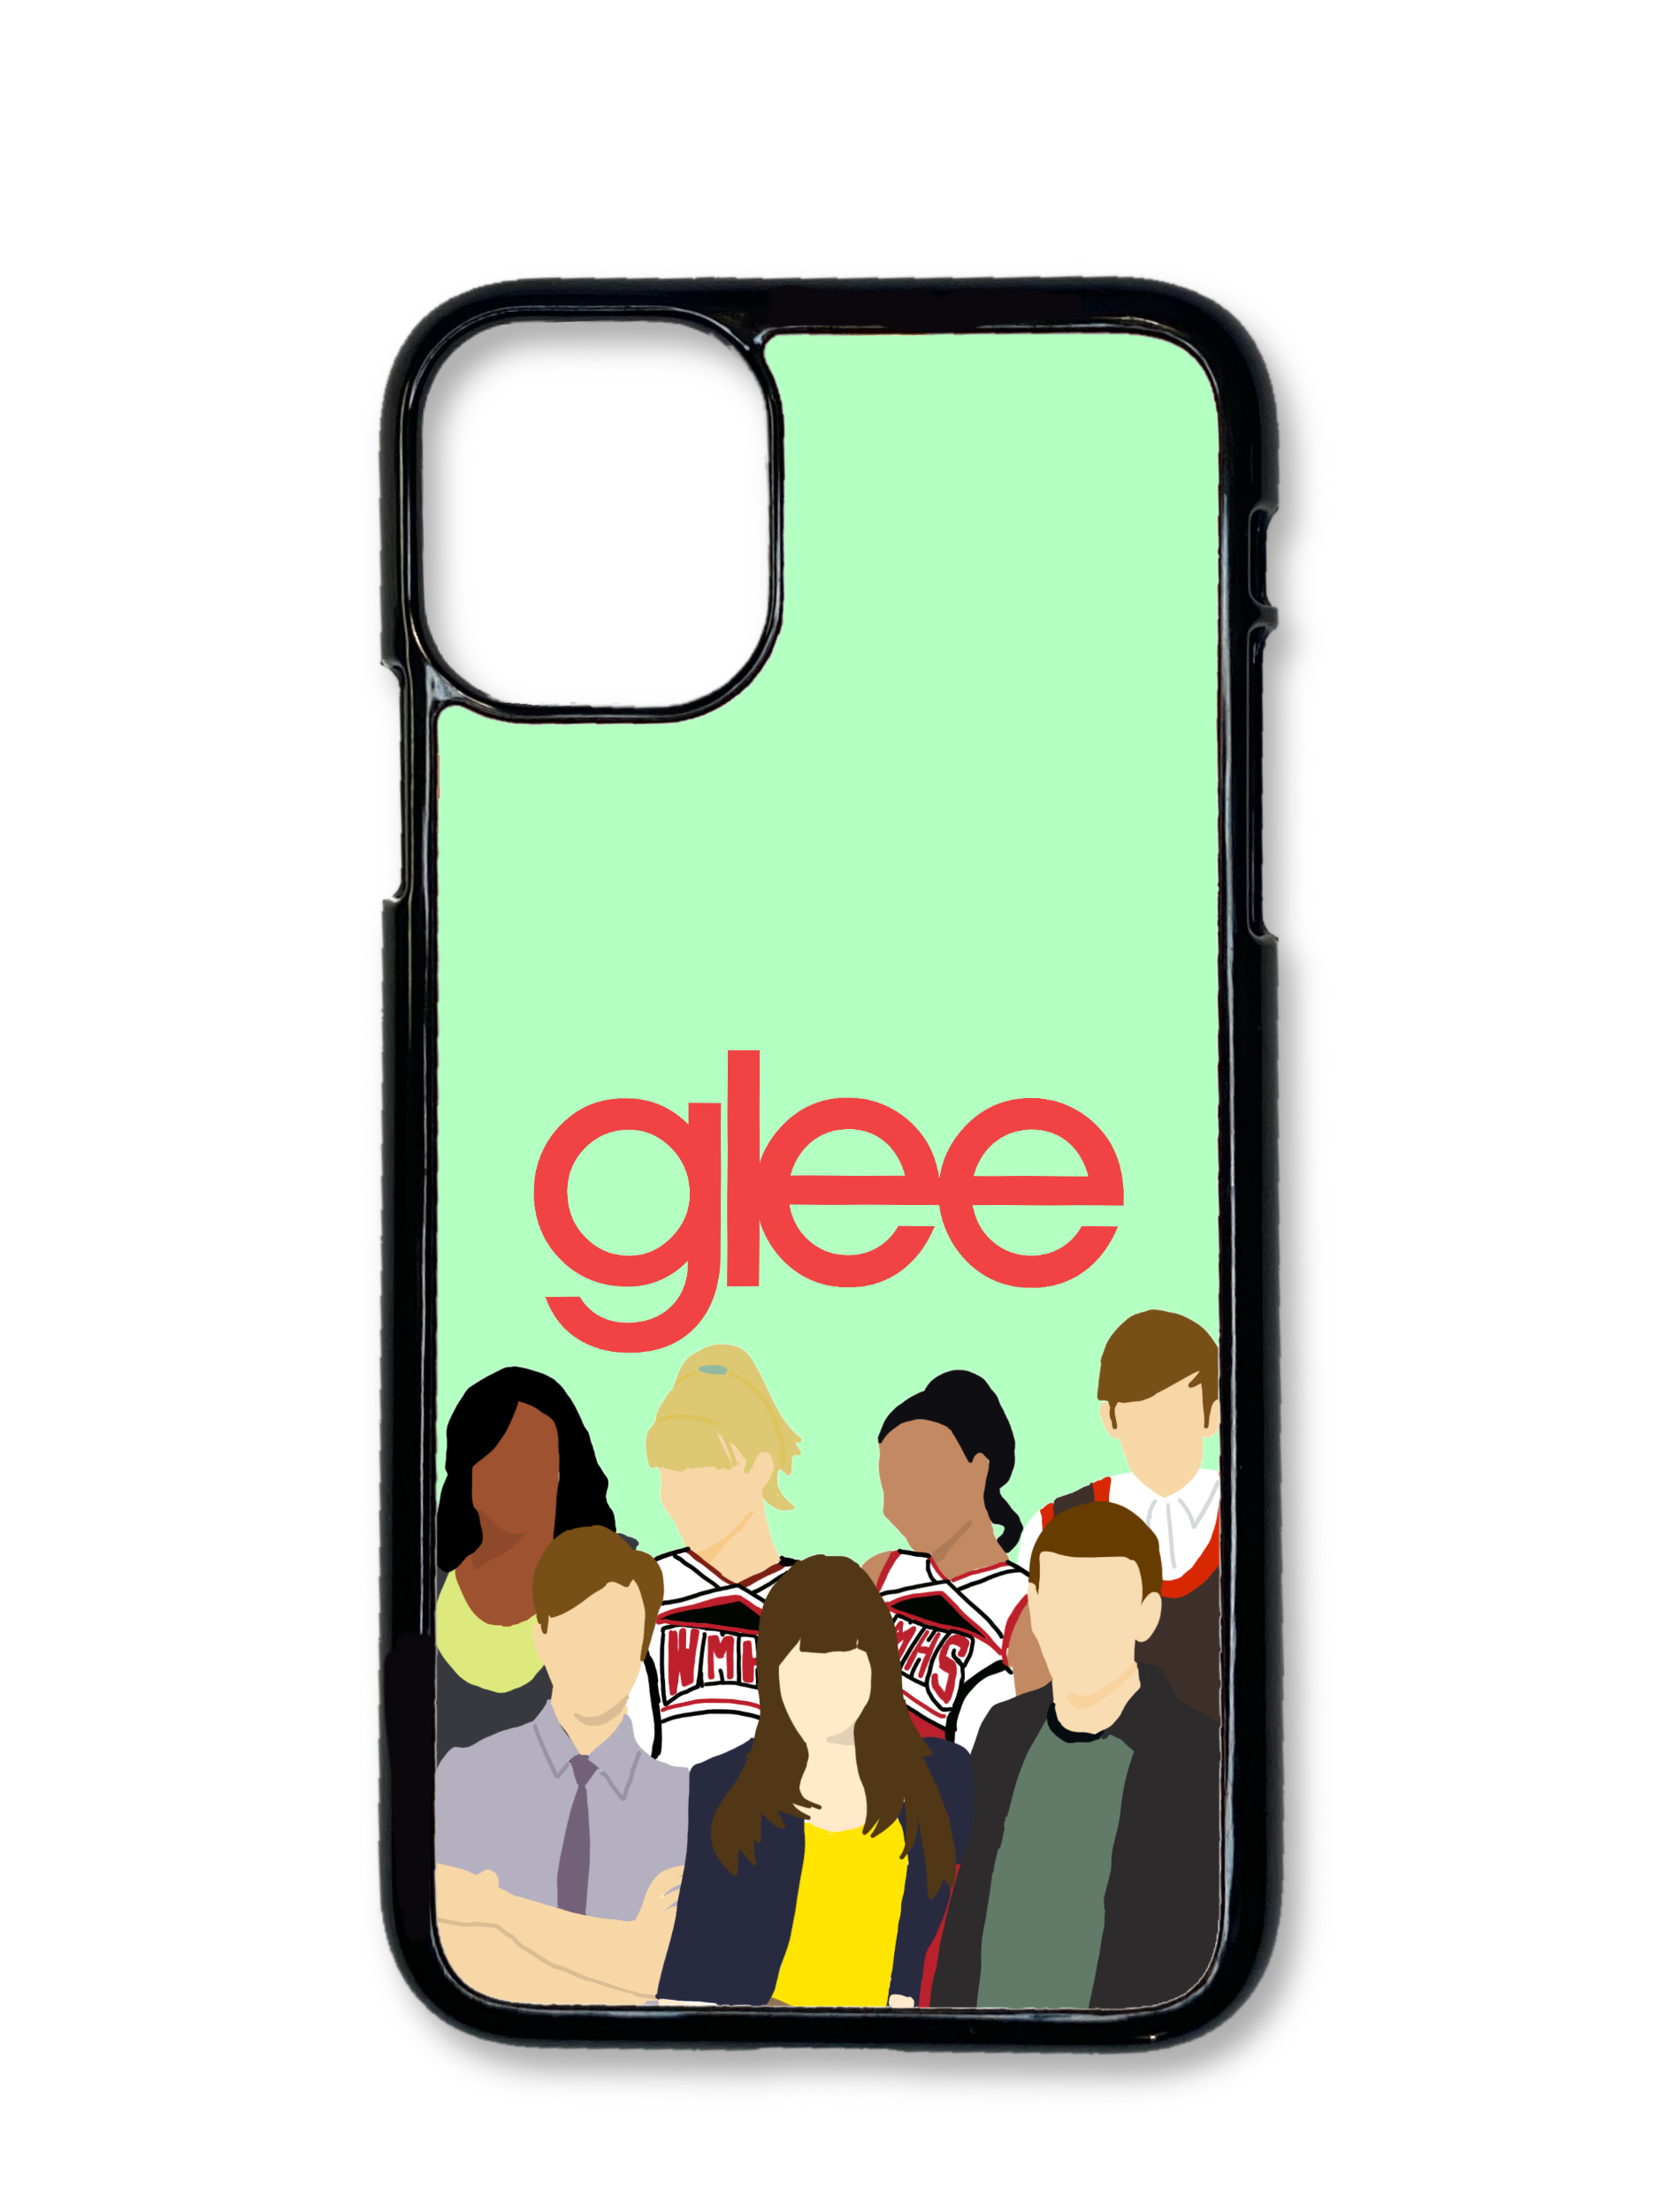 Glee Phone Case